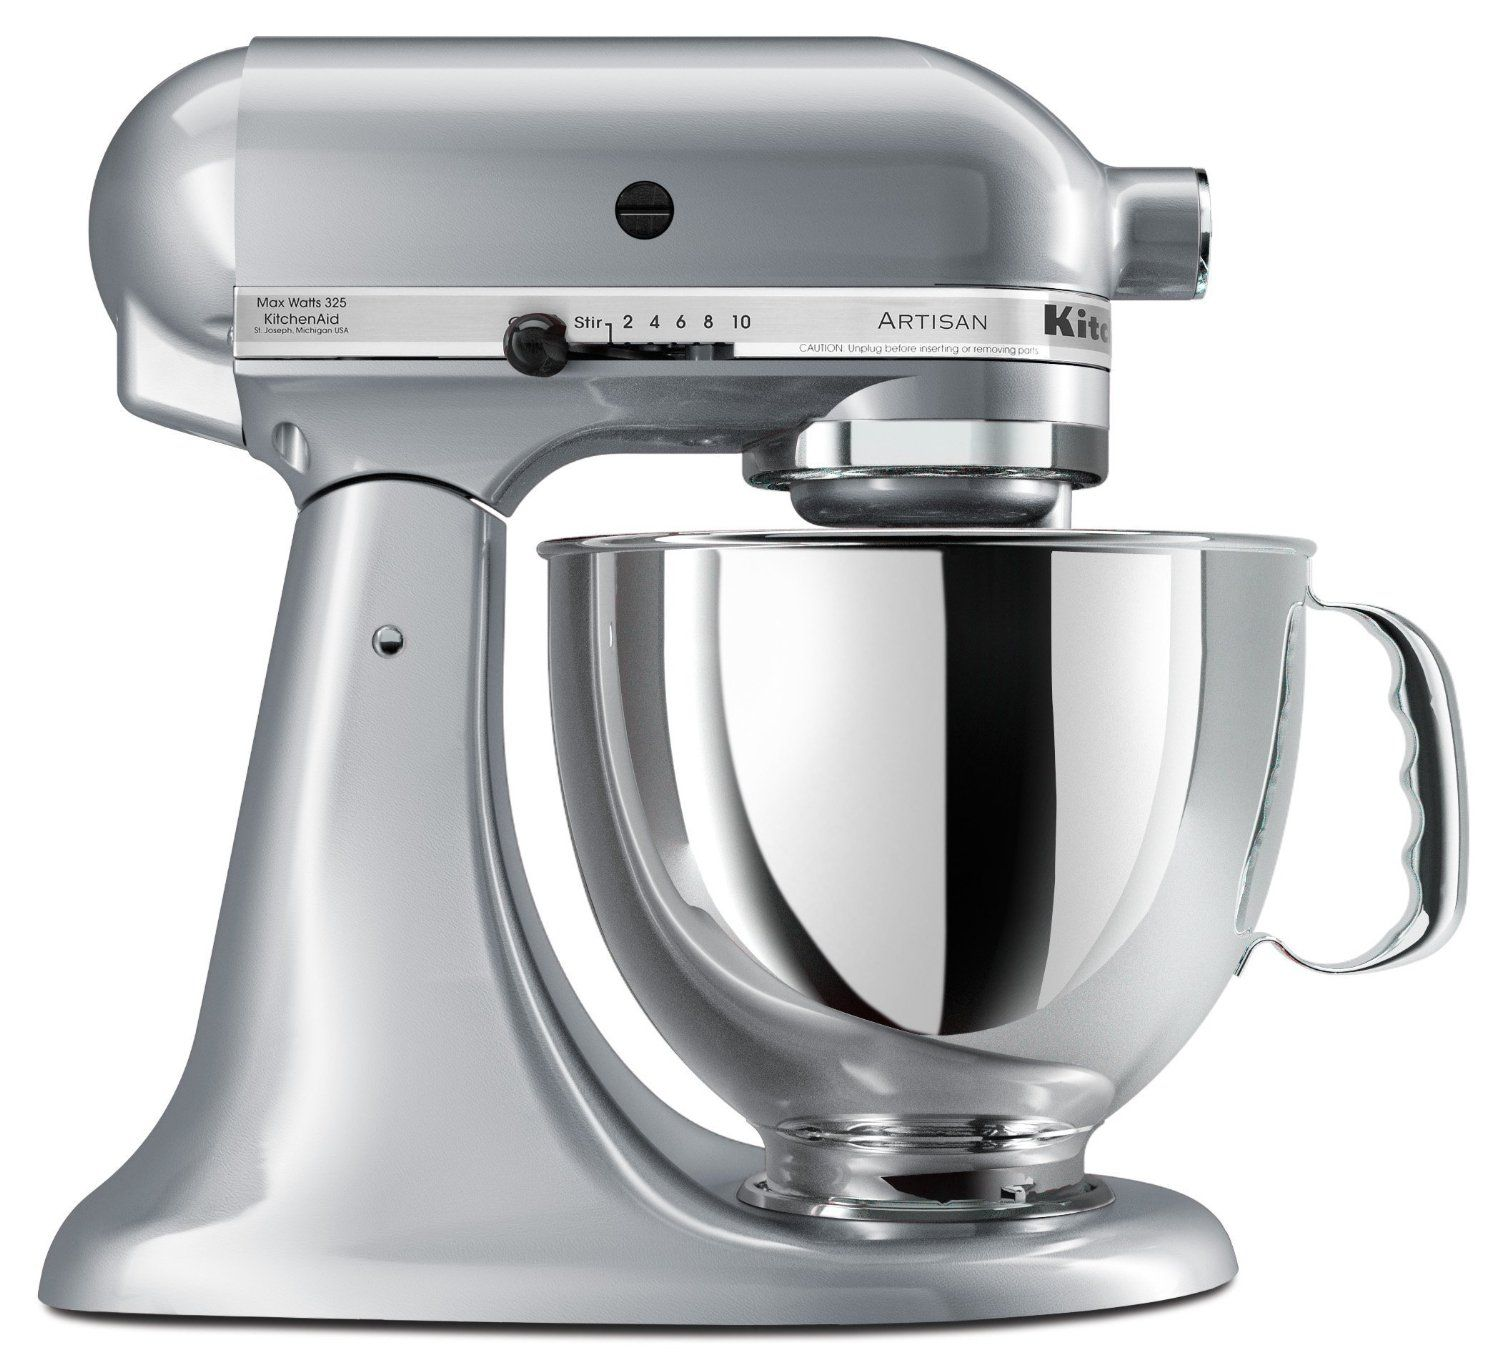 5 Best KitchenAid Mixers - Dec. - BestReviewsGet the Best Price. · Trusted Reviews · View Top 5 List · Get the Best PriceTypes: Top Dehumidifiers, Top Air Mattresses, Top Roombas, Top Weed Eaters, Top Fitbits.